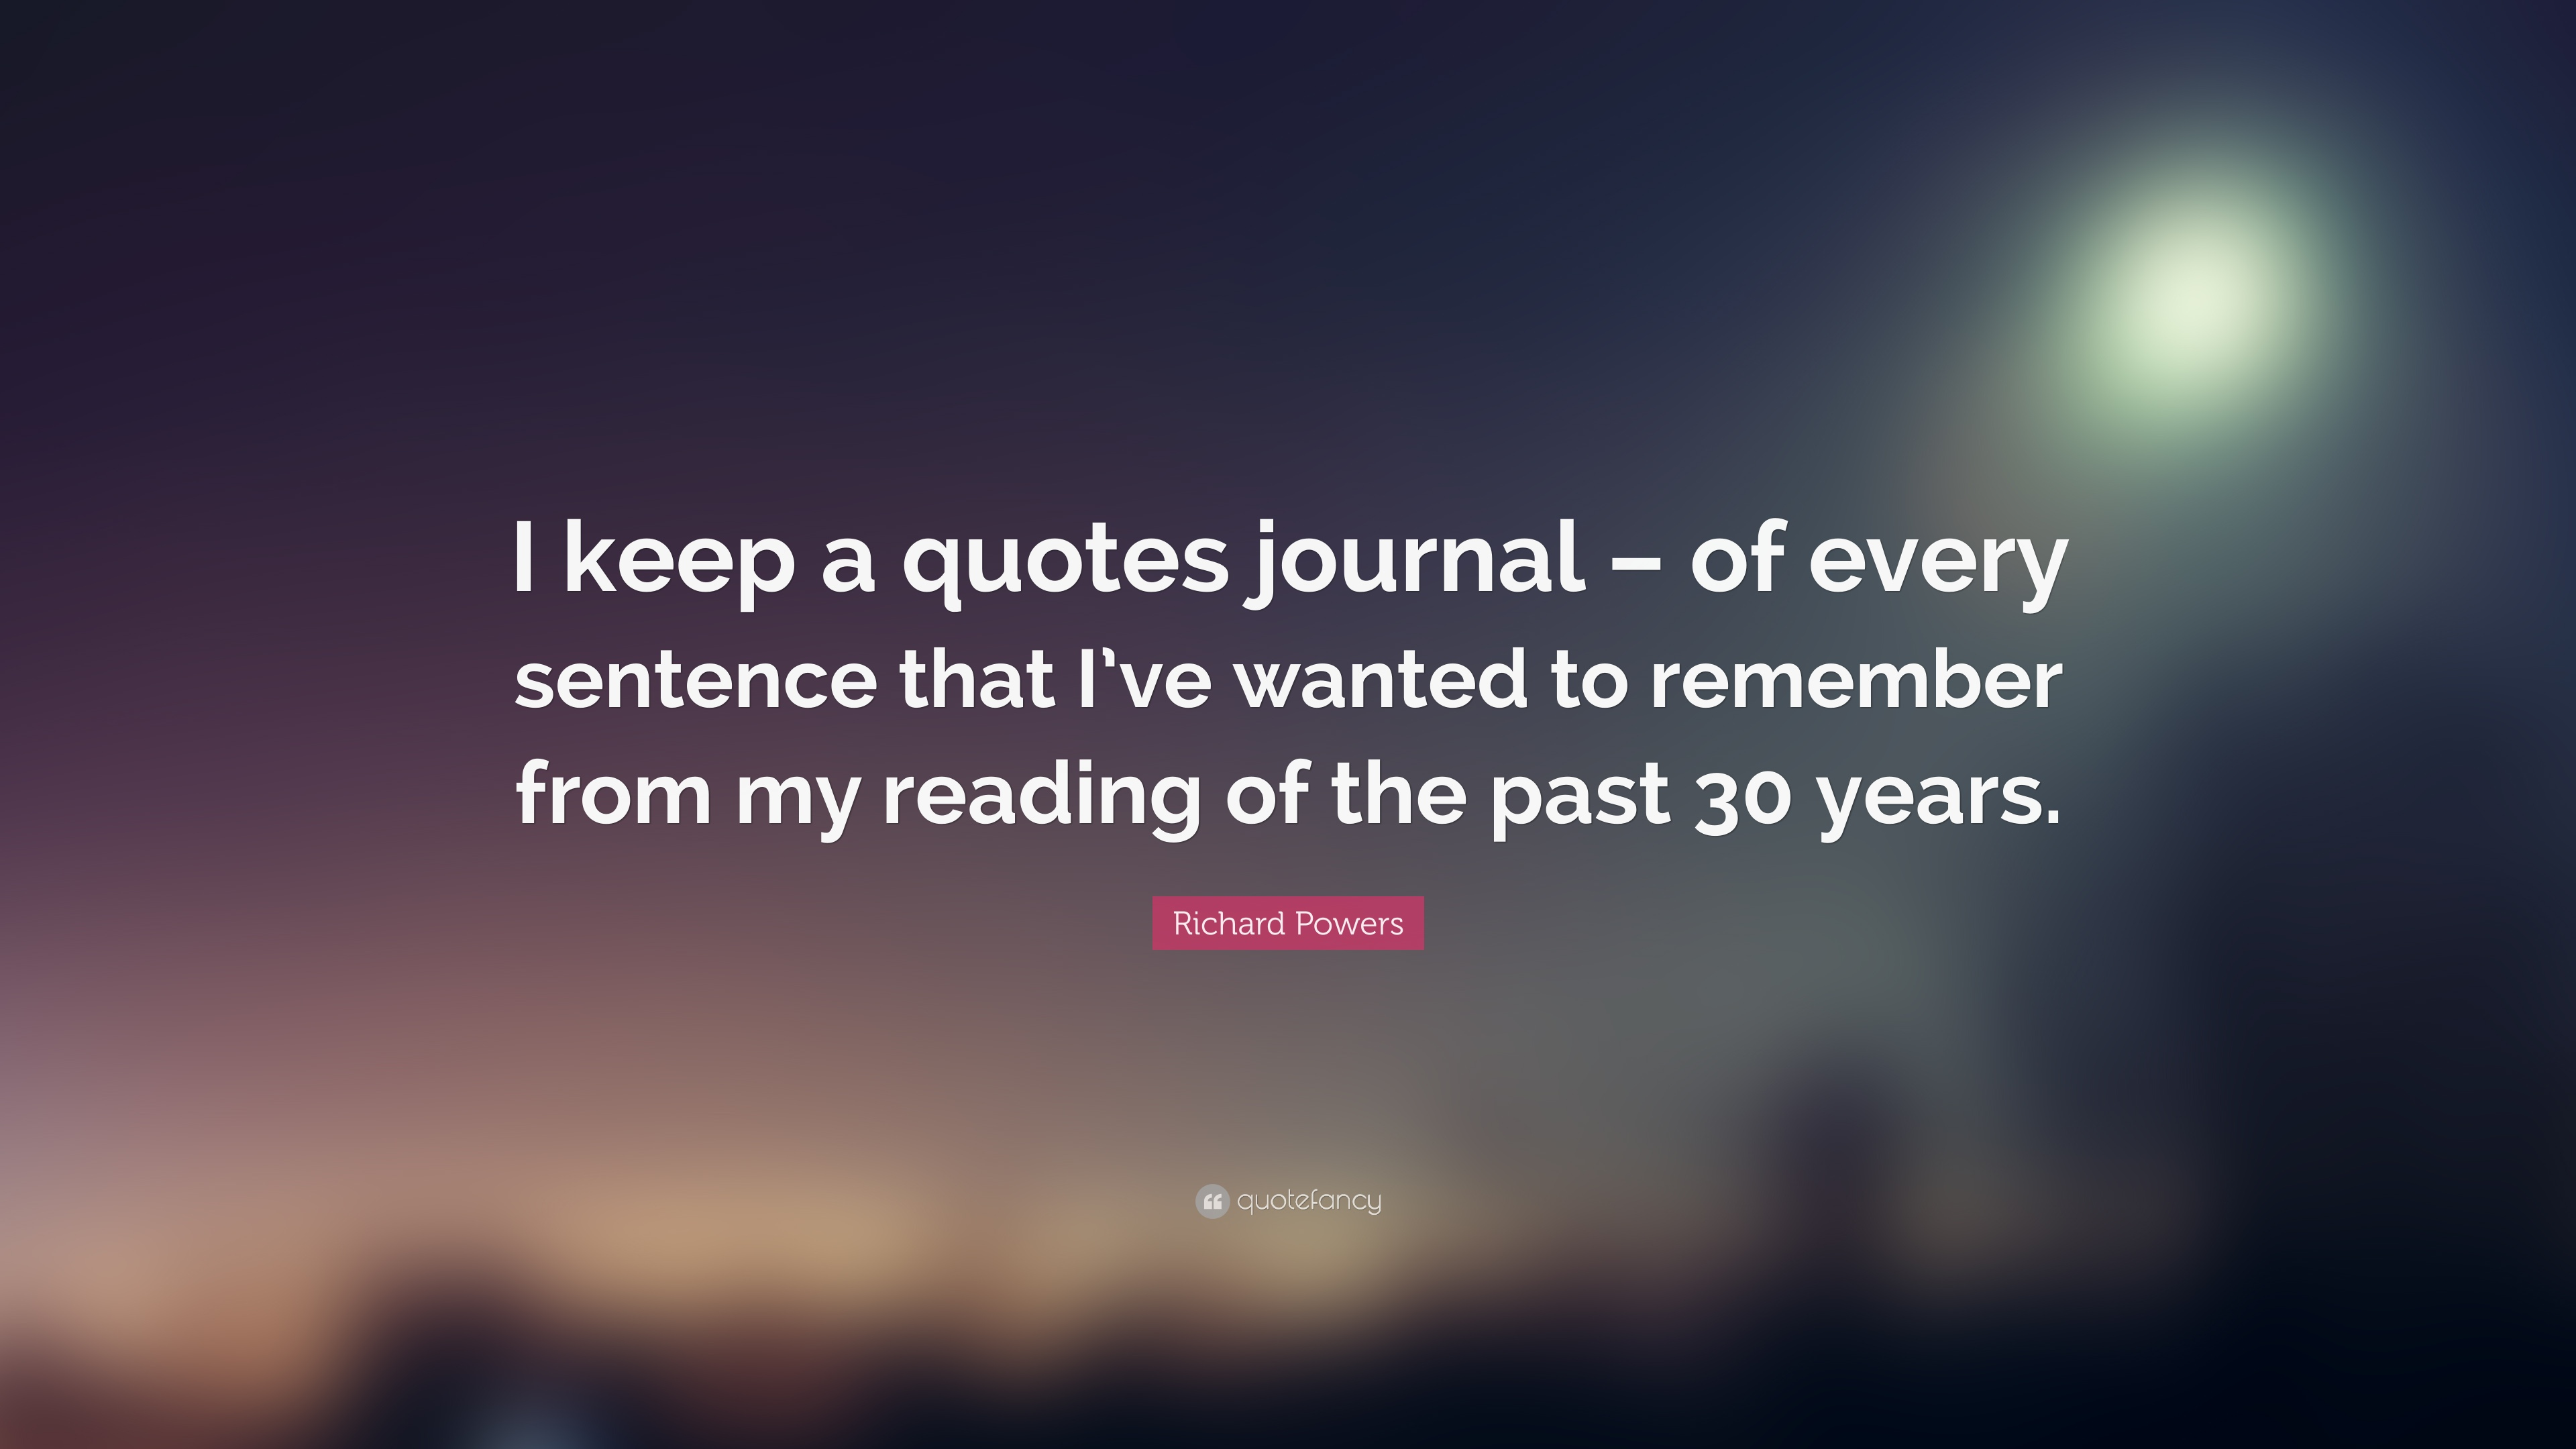 Quotes Journal Richard Powers Quotes 42 Wallpapers  Quotefancy